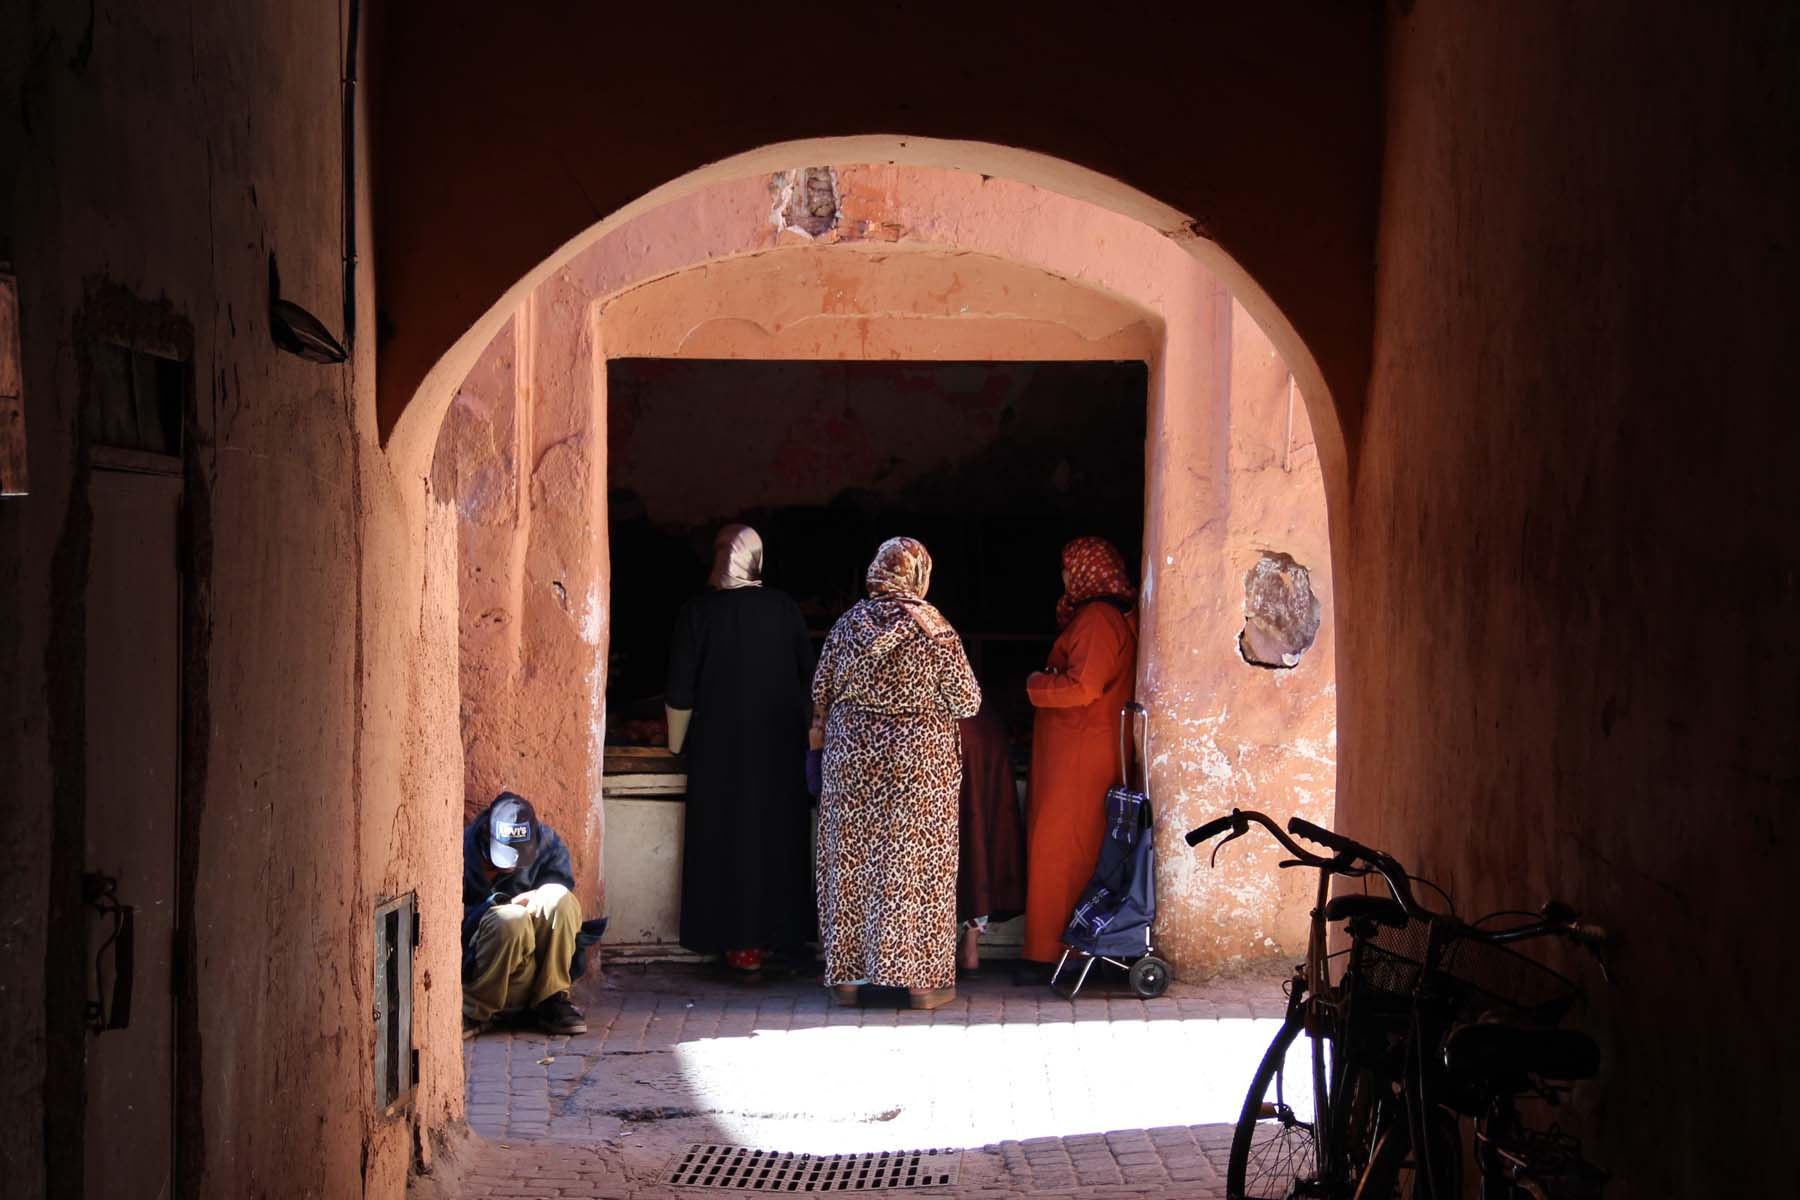 Women in Marrakech souk